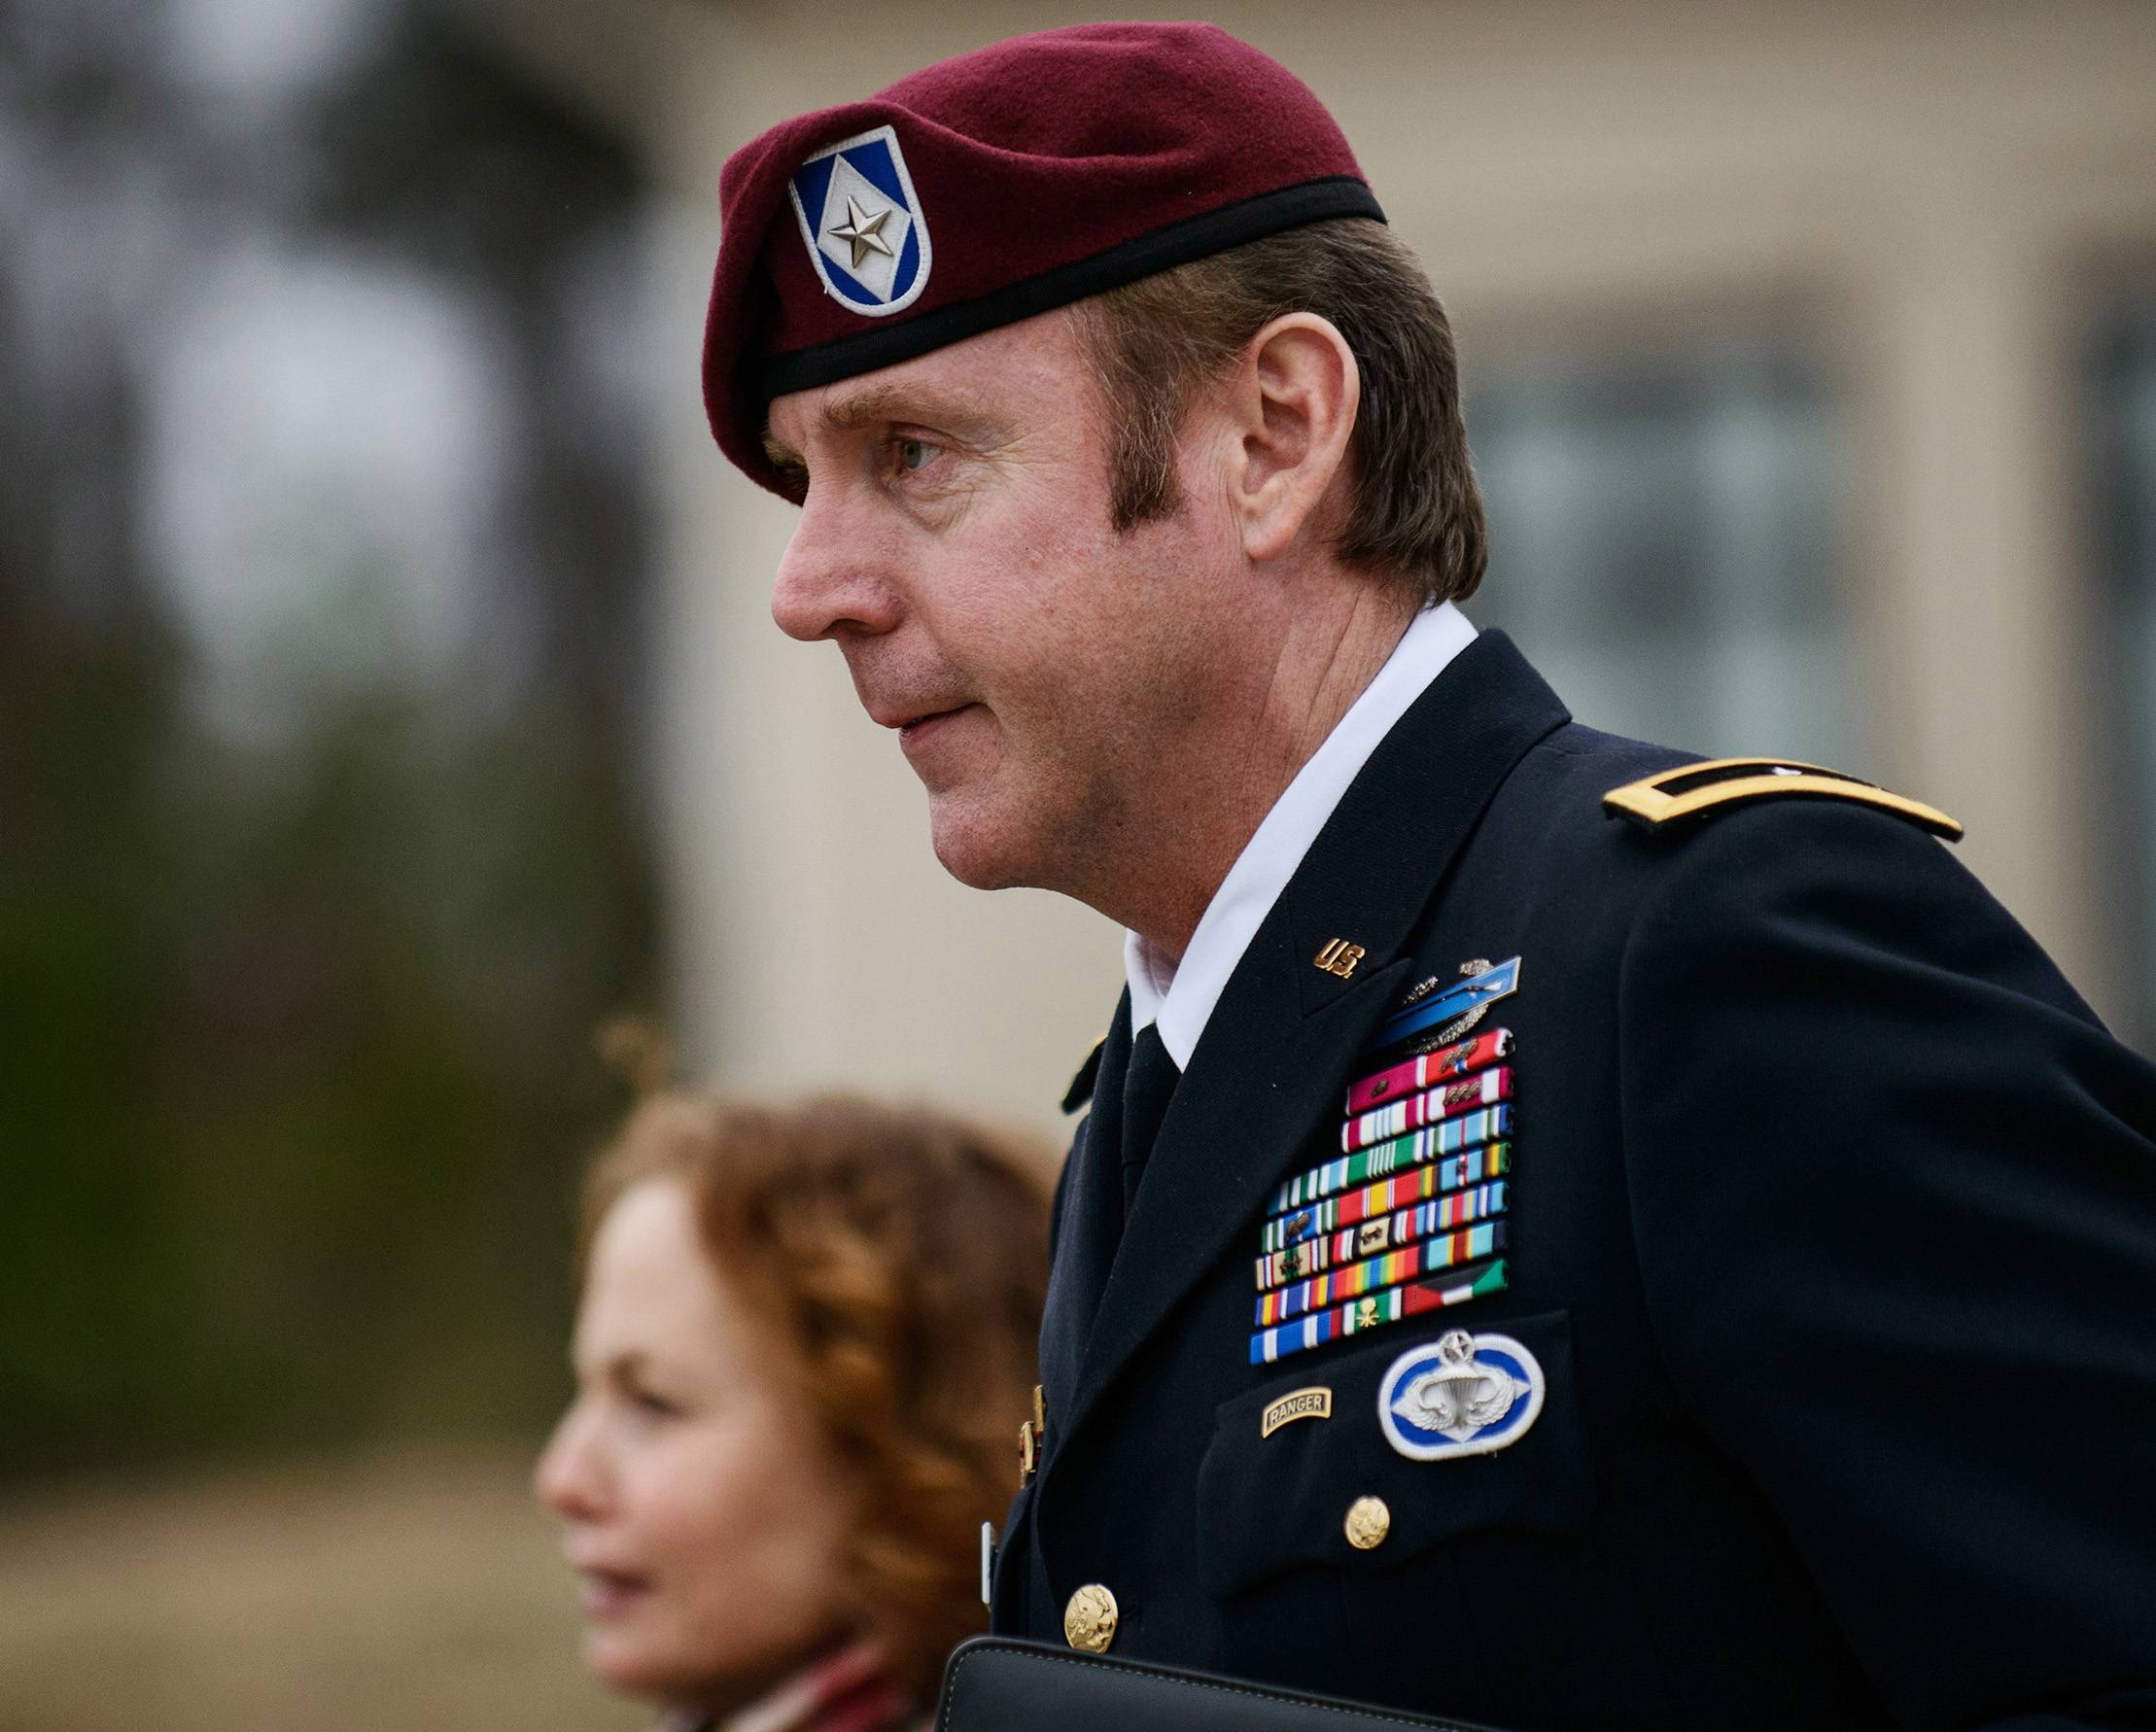 Brig. Gen. Jeffrey Sinclair, seen here on March 4, admitted Monday to improper relationships with three subordinates and appeared to choke up as he told a judge that he'd failed the female captain who had leveled the most serious accusations against him.